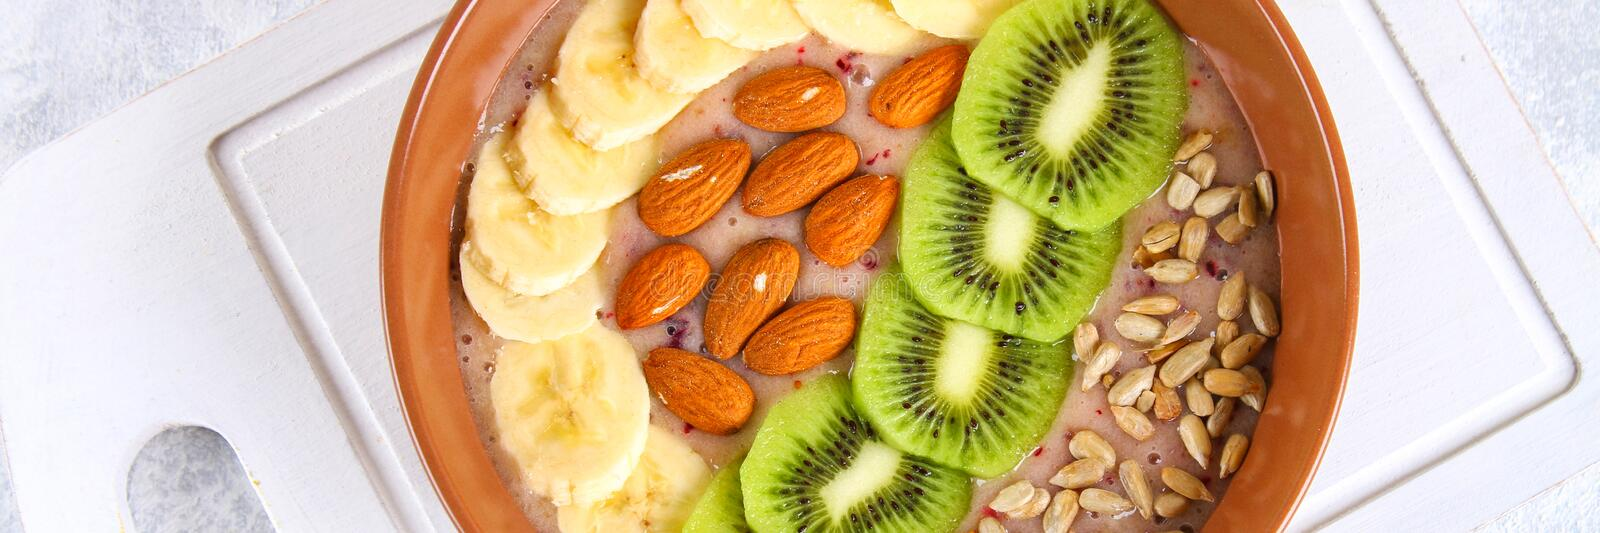 Breakfast berry smoothie bowl topped with bananas, berries, kiwi, almonds and sunflower seeds. Breakfast berry smoothie bowl topped with bananas, berries, kiwi stock photography